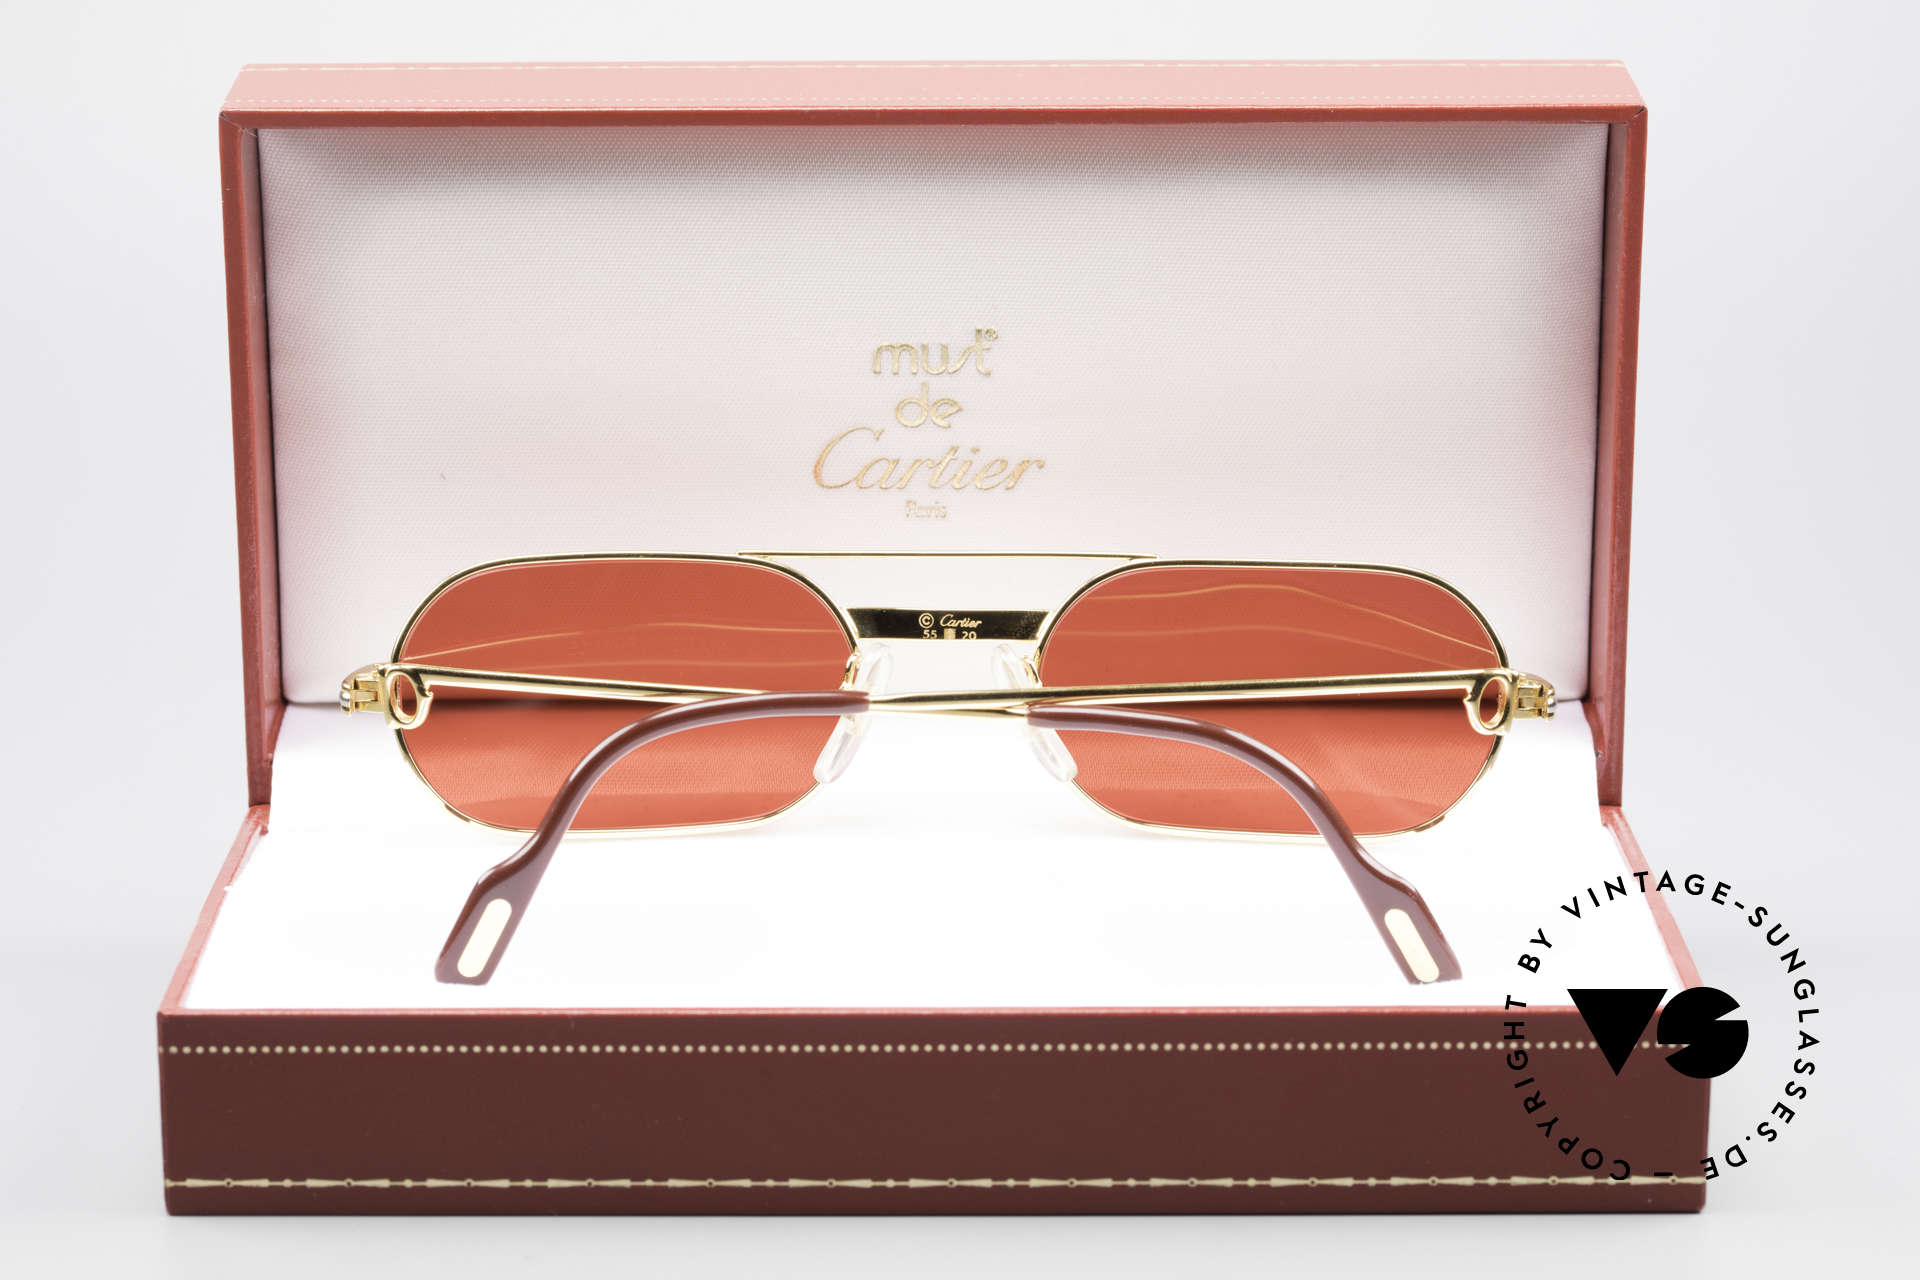 Cartier MUST LC - M 3D Red Luxury Sunglasses, unworn with orig. packing (very rare in this condition), Made for Men